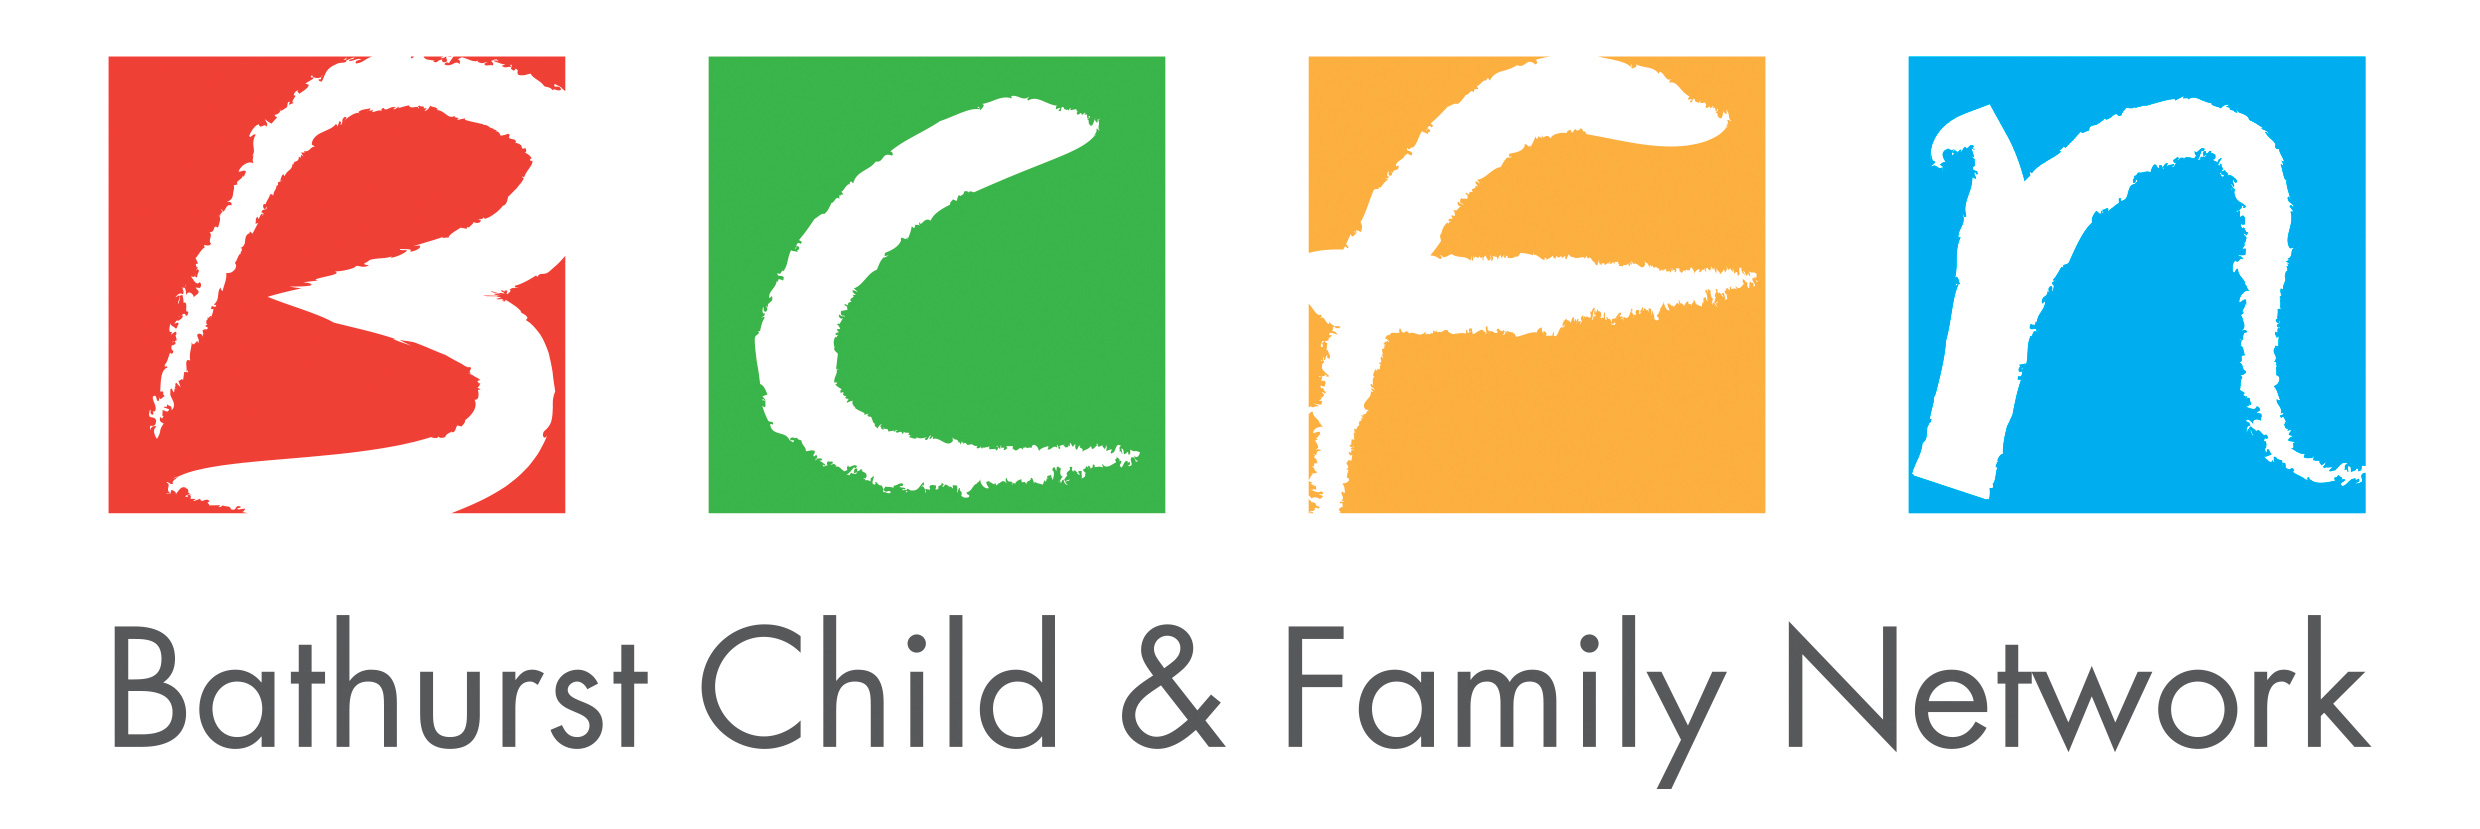 Bathurst Child and Family Network